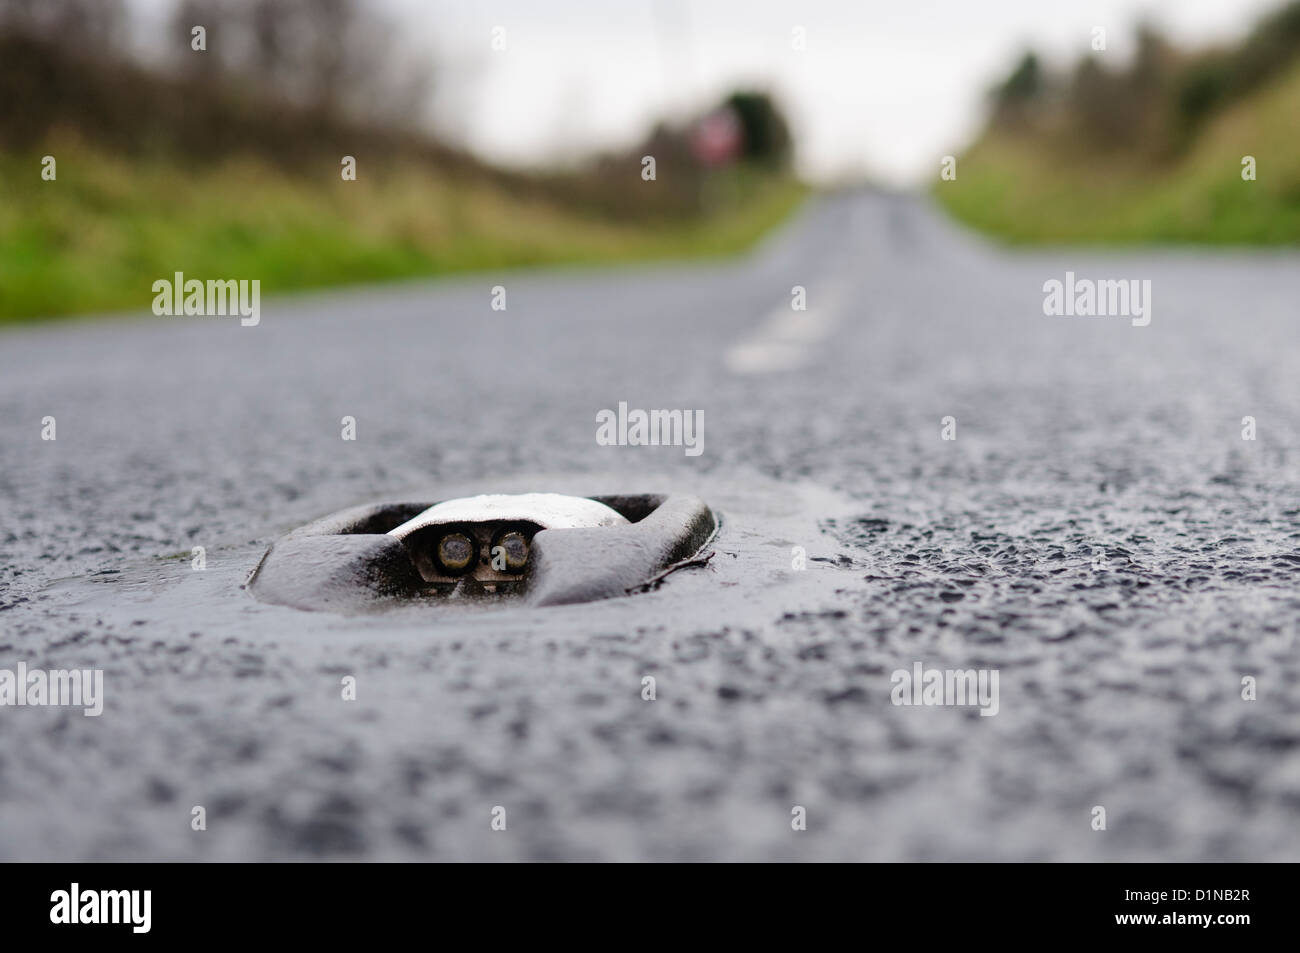 Catseye (TM) reflective road marking in the middle of a rural road. - Stock Image